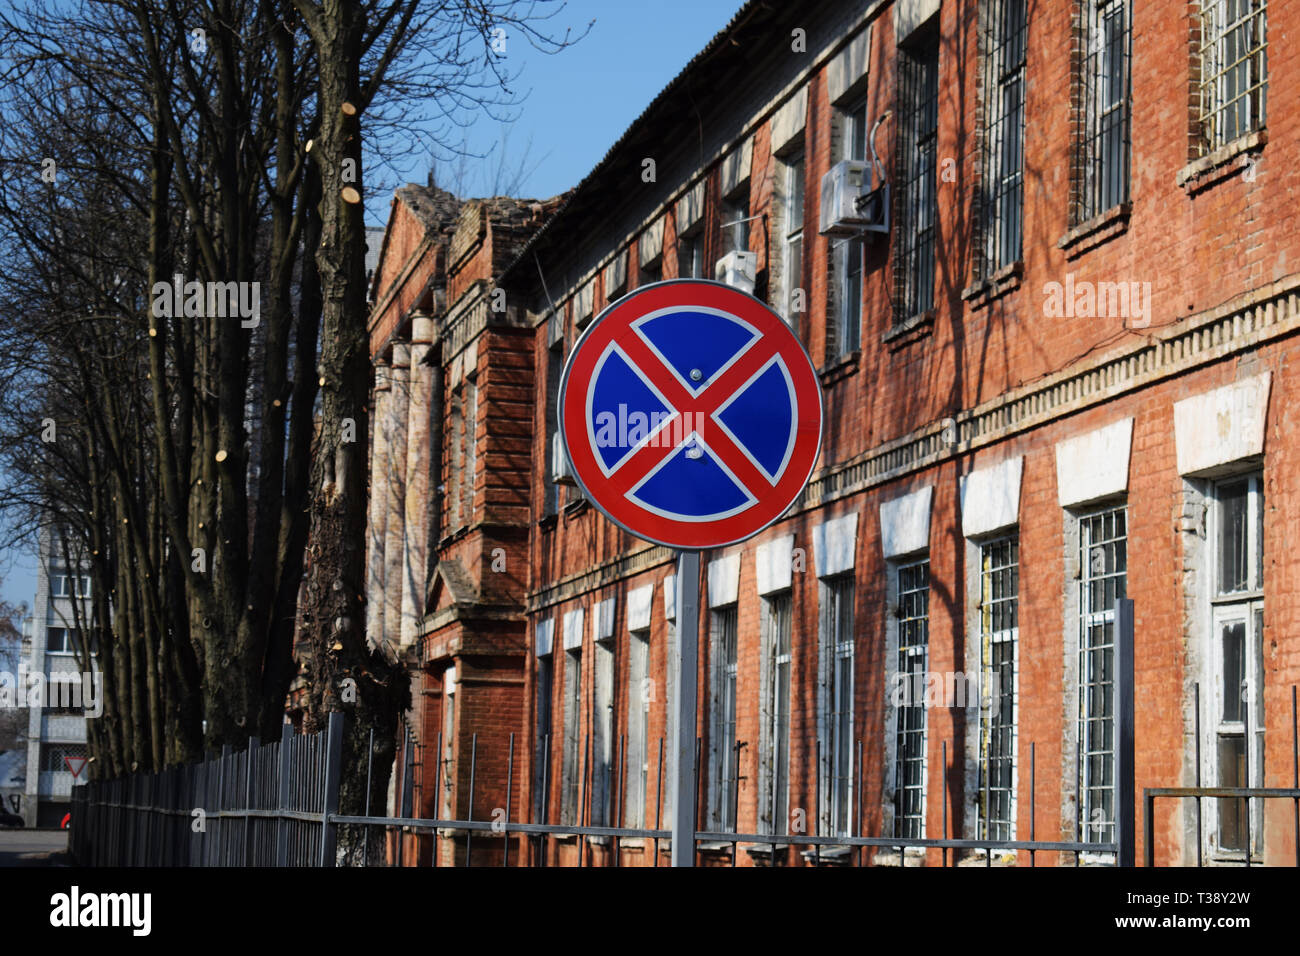 Traffic sign No Stopping on a brick building background - Stock Image